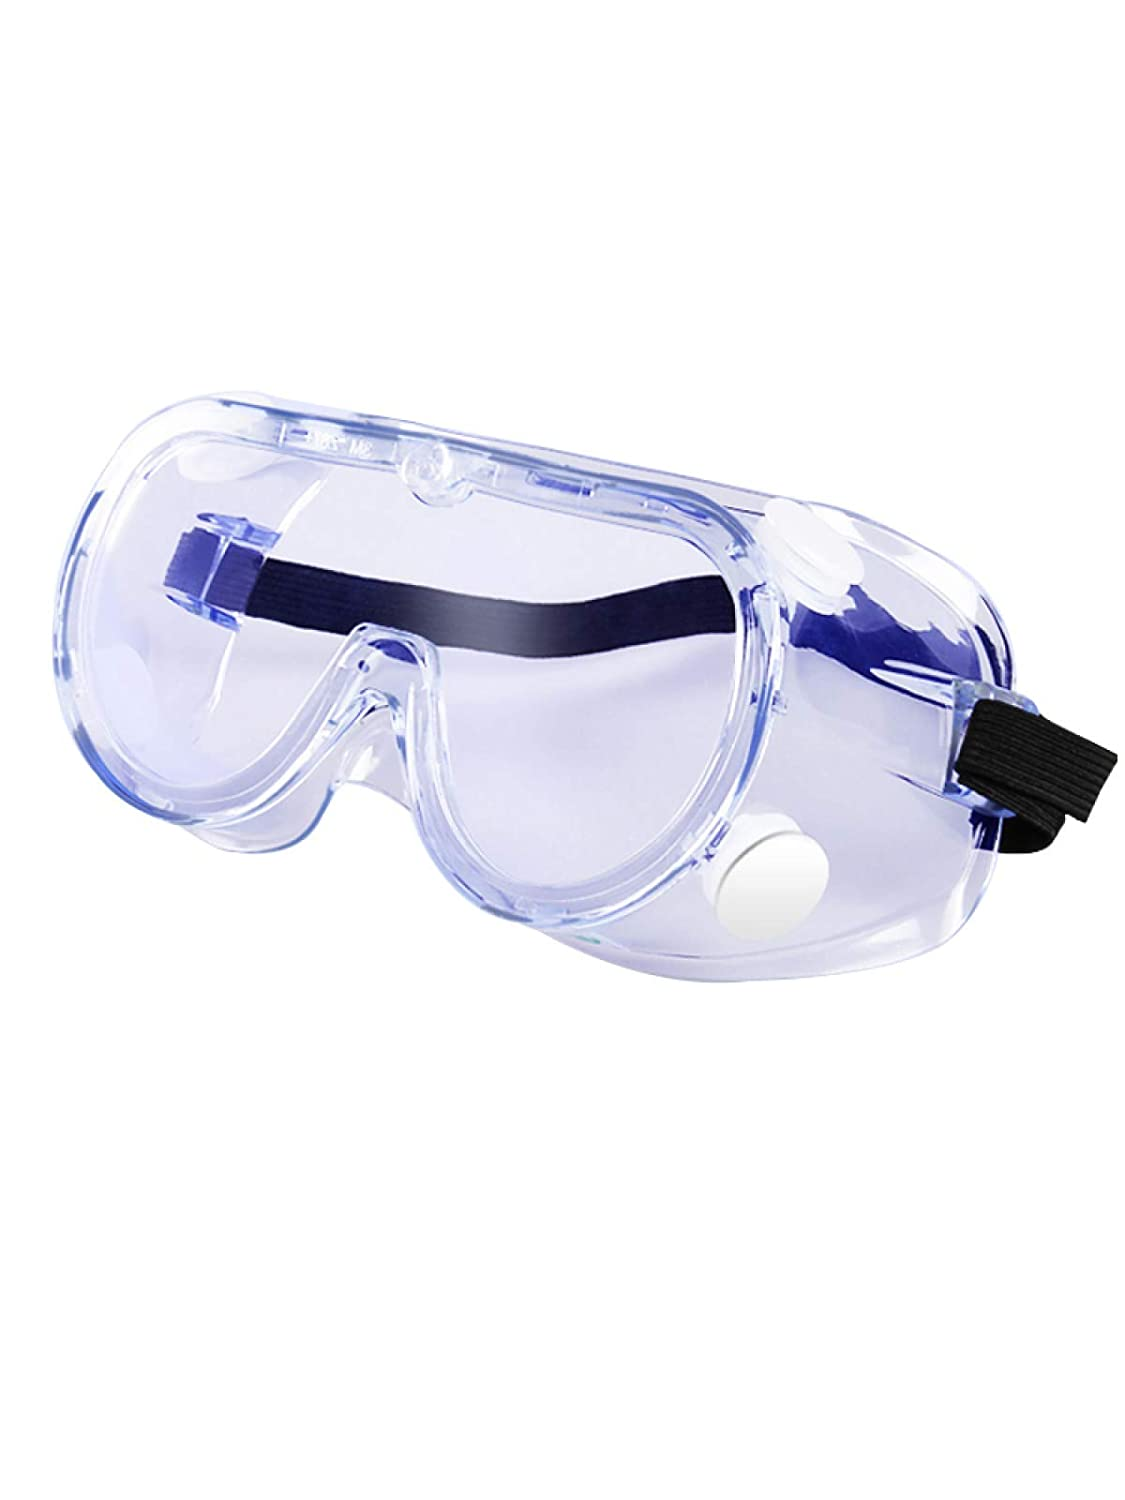 Protective Safety Goggle Glasses Anti-Fog Against Liquid Splash Clear Lens Wide-Vision Adjustable Eye Protection for Home & Workplace